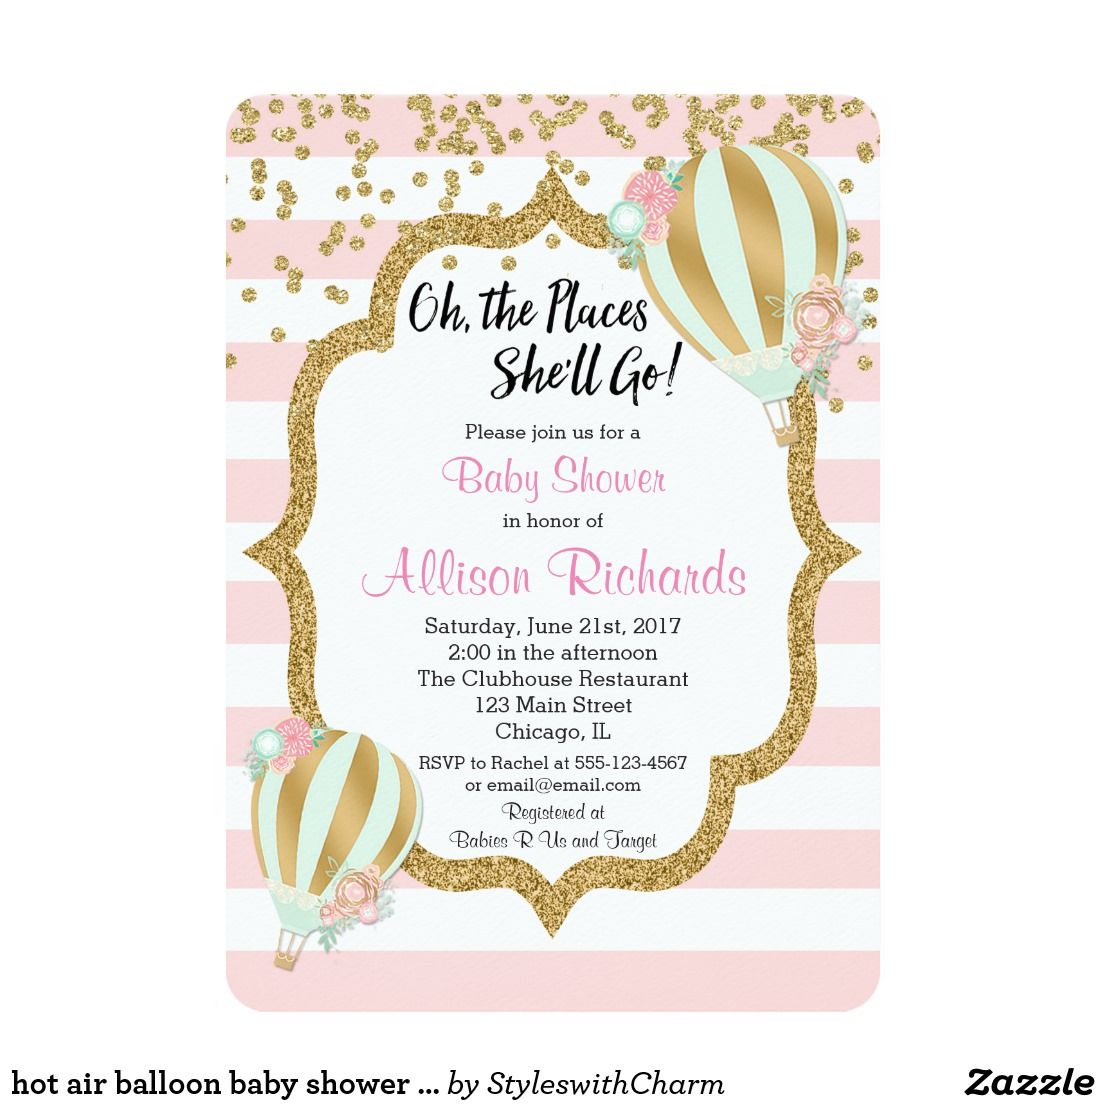 hot air balloon baby shower invitation pink gold For more advanced ...